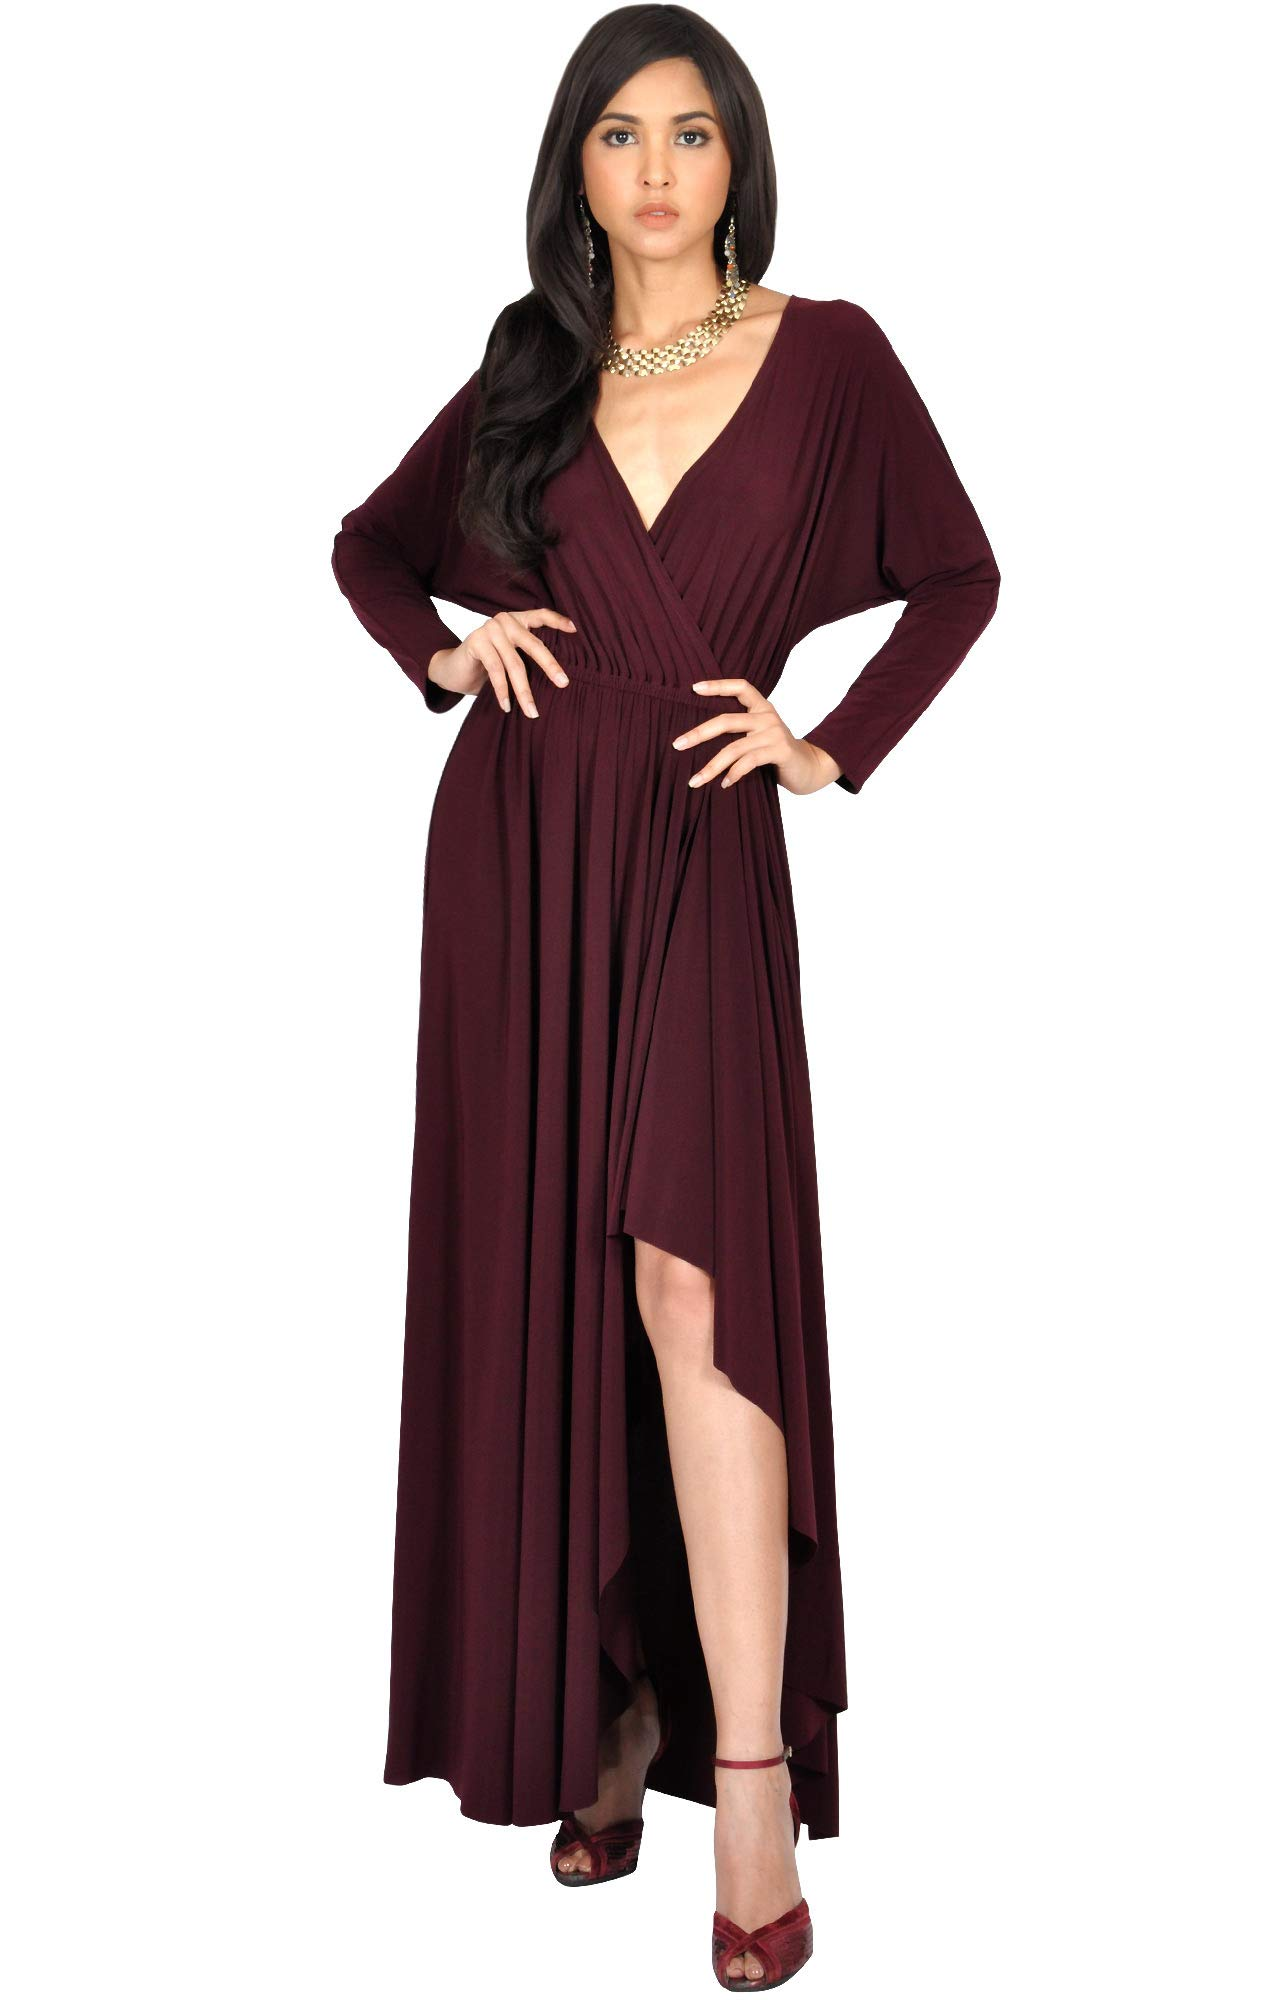 9f8ff35ab64 KOH KOH Plus Size Womens Long Sleeve Sleeves Wrap Slit Split Formal Fall  Winter Cocktail Sexy Flowy Evening Day Abaya Gown Gowns Maxi Dress Dresses